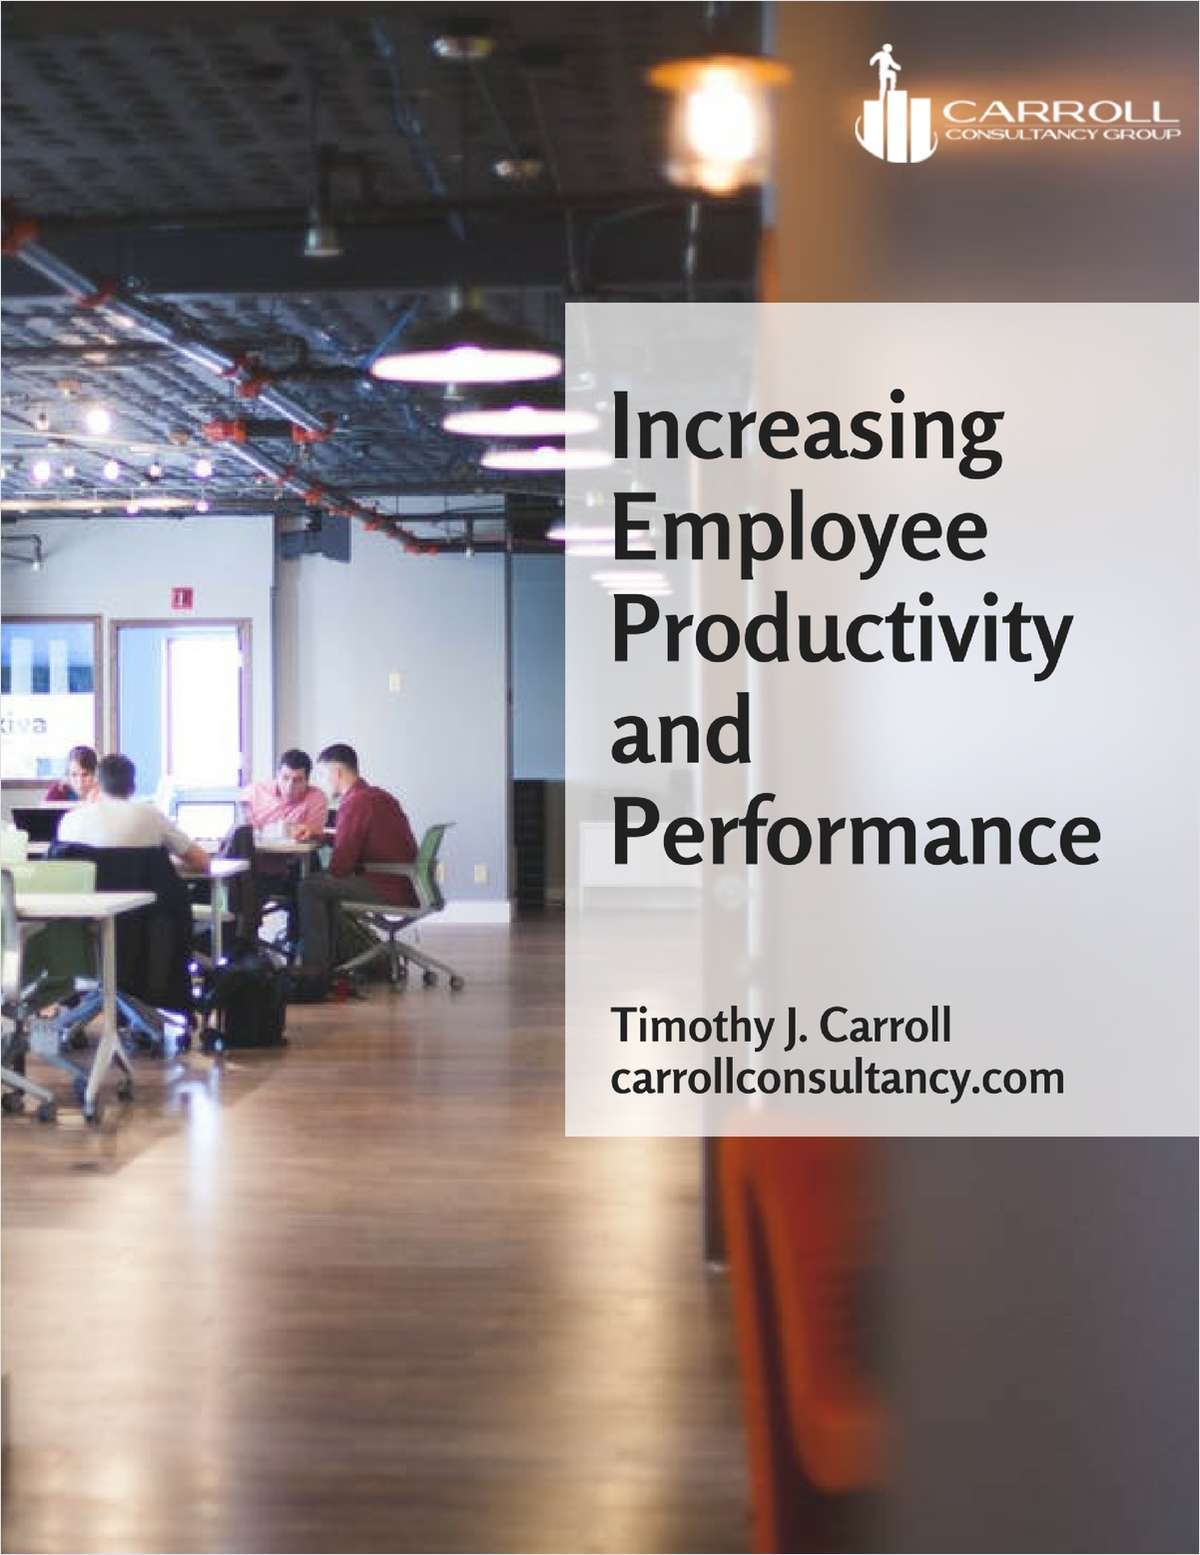 Increasing Employee Productivity and Performance